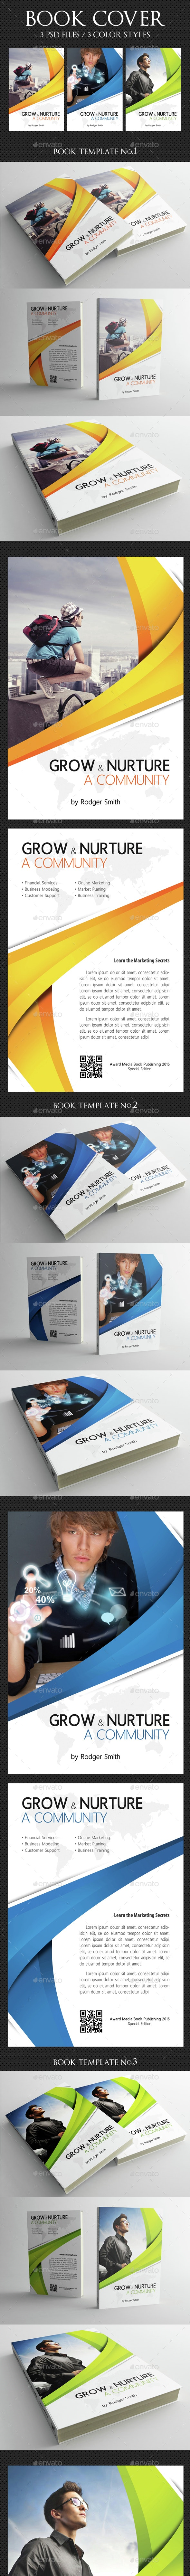 Book Cover Template 07 - Miscellaneous Print Templates